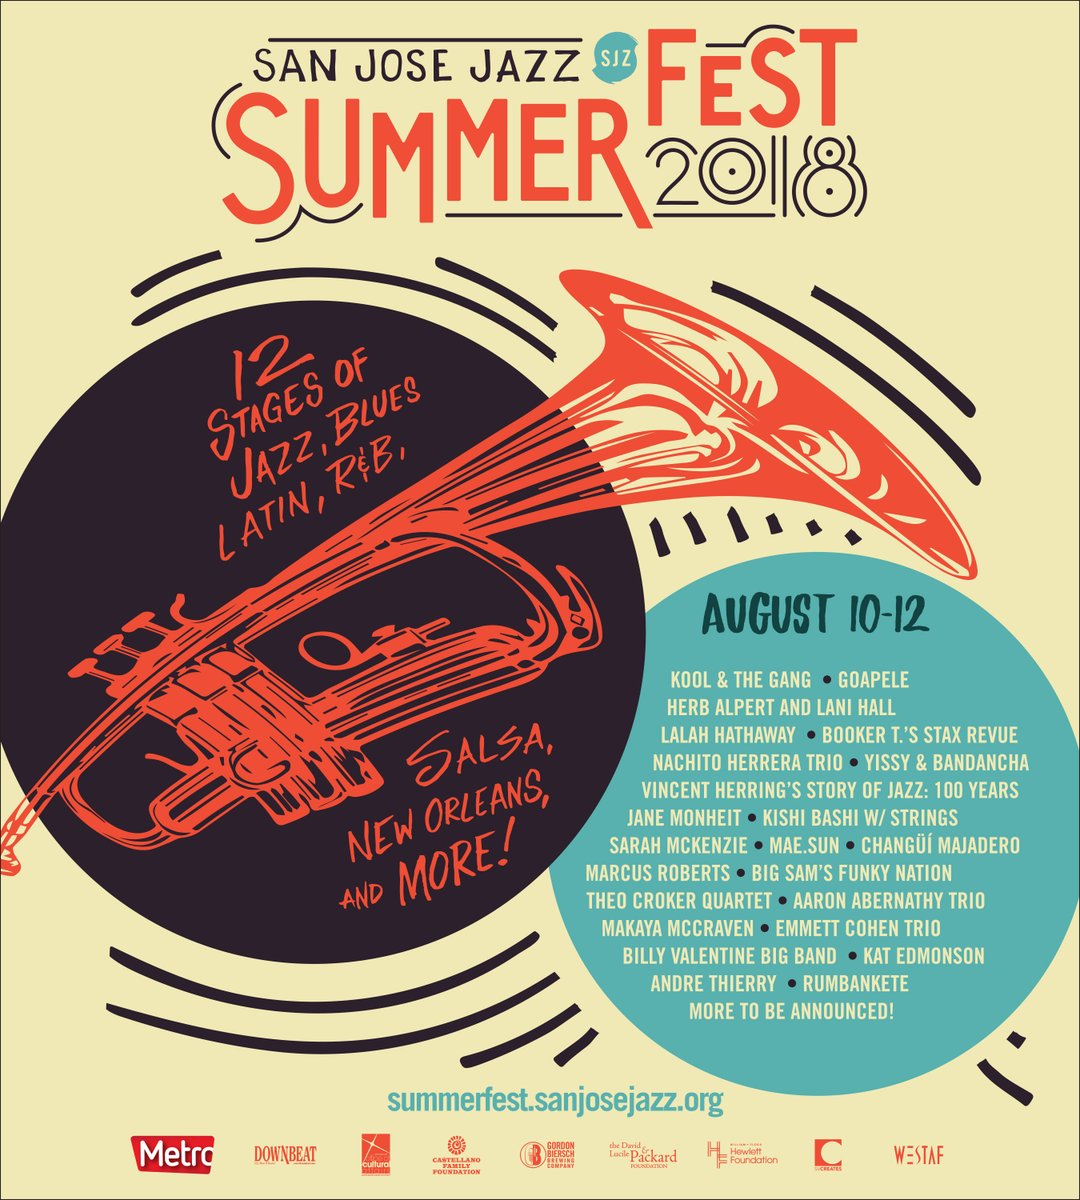 San Jose Jazz Summer Fest 2018